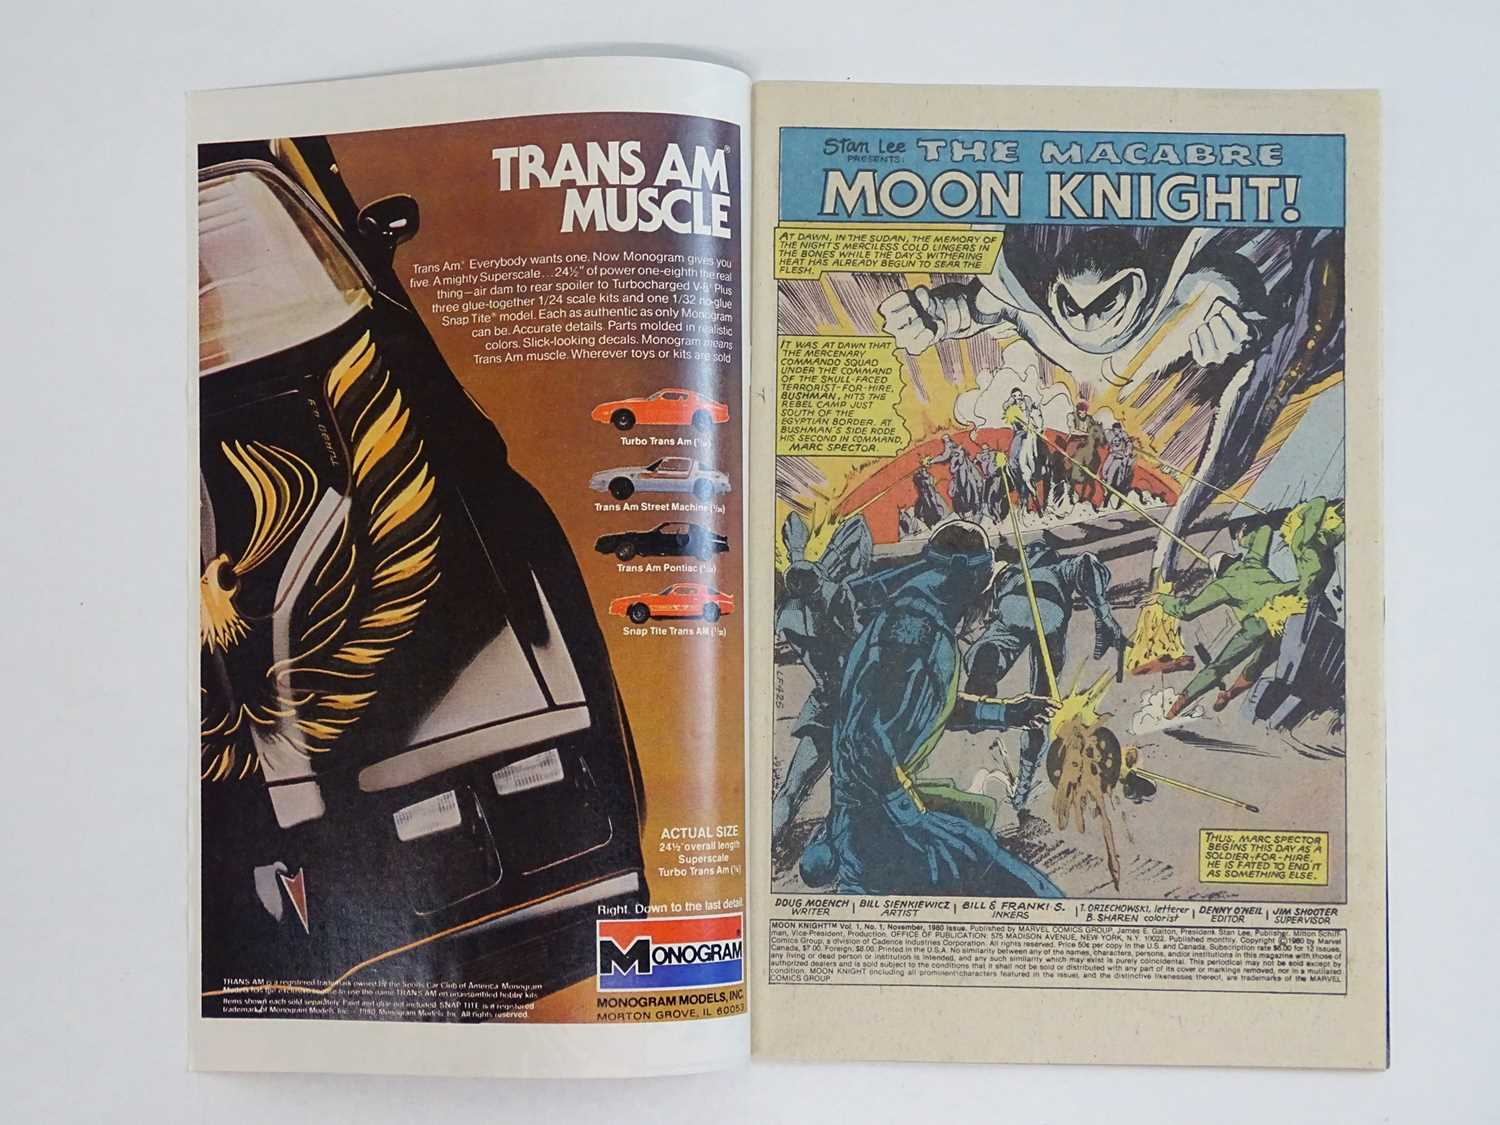 MOON KNIGHT #1 - (1980 - MARVEL) - HOT BOOK - Origin of Moon Knight + First appearance of the - Image 3 of 9